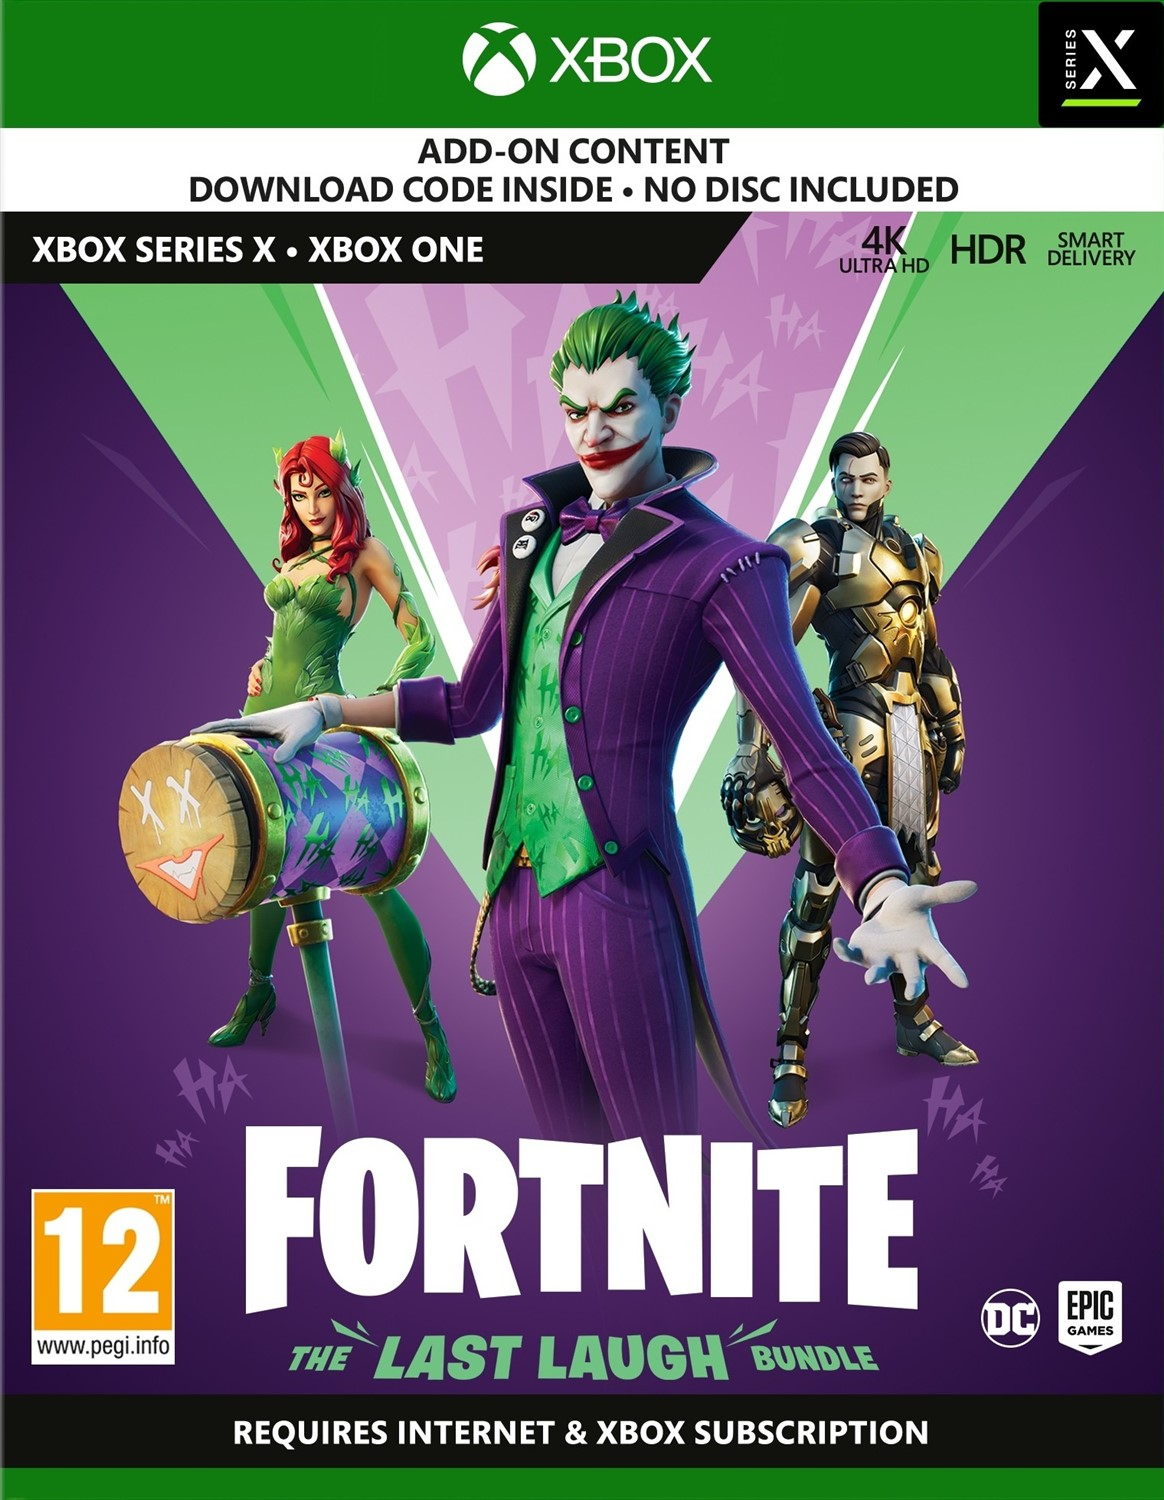 Fortnite: The Last Laugh Bundle (Xbox Series X/Xbox One)